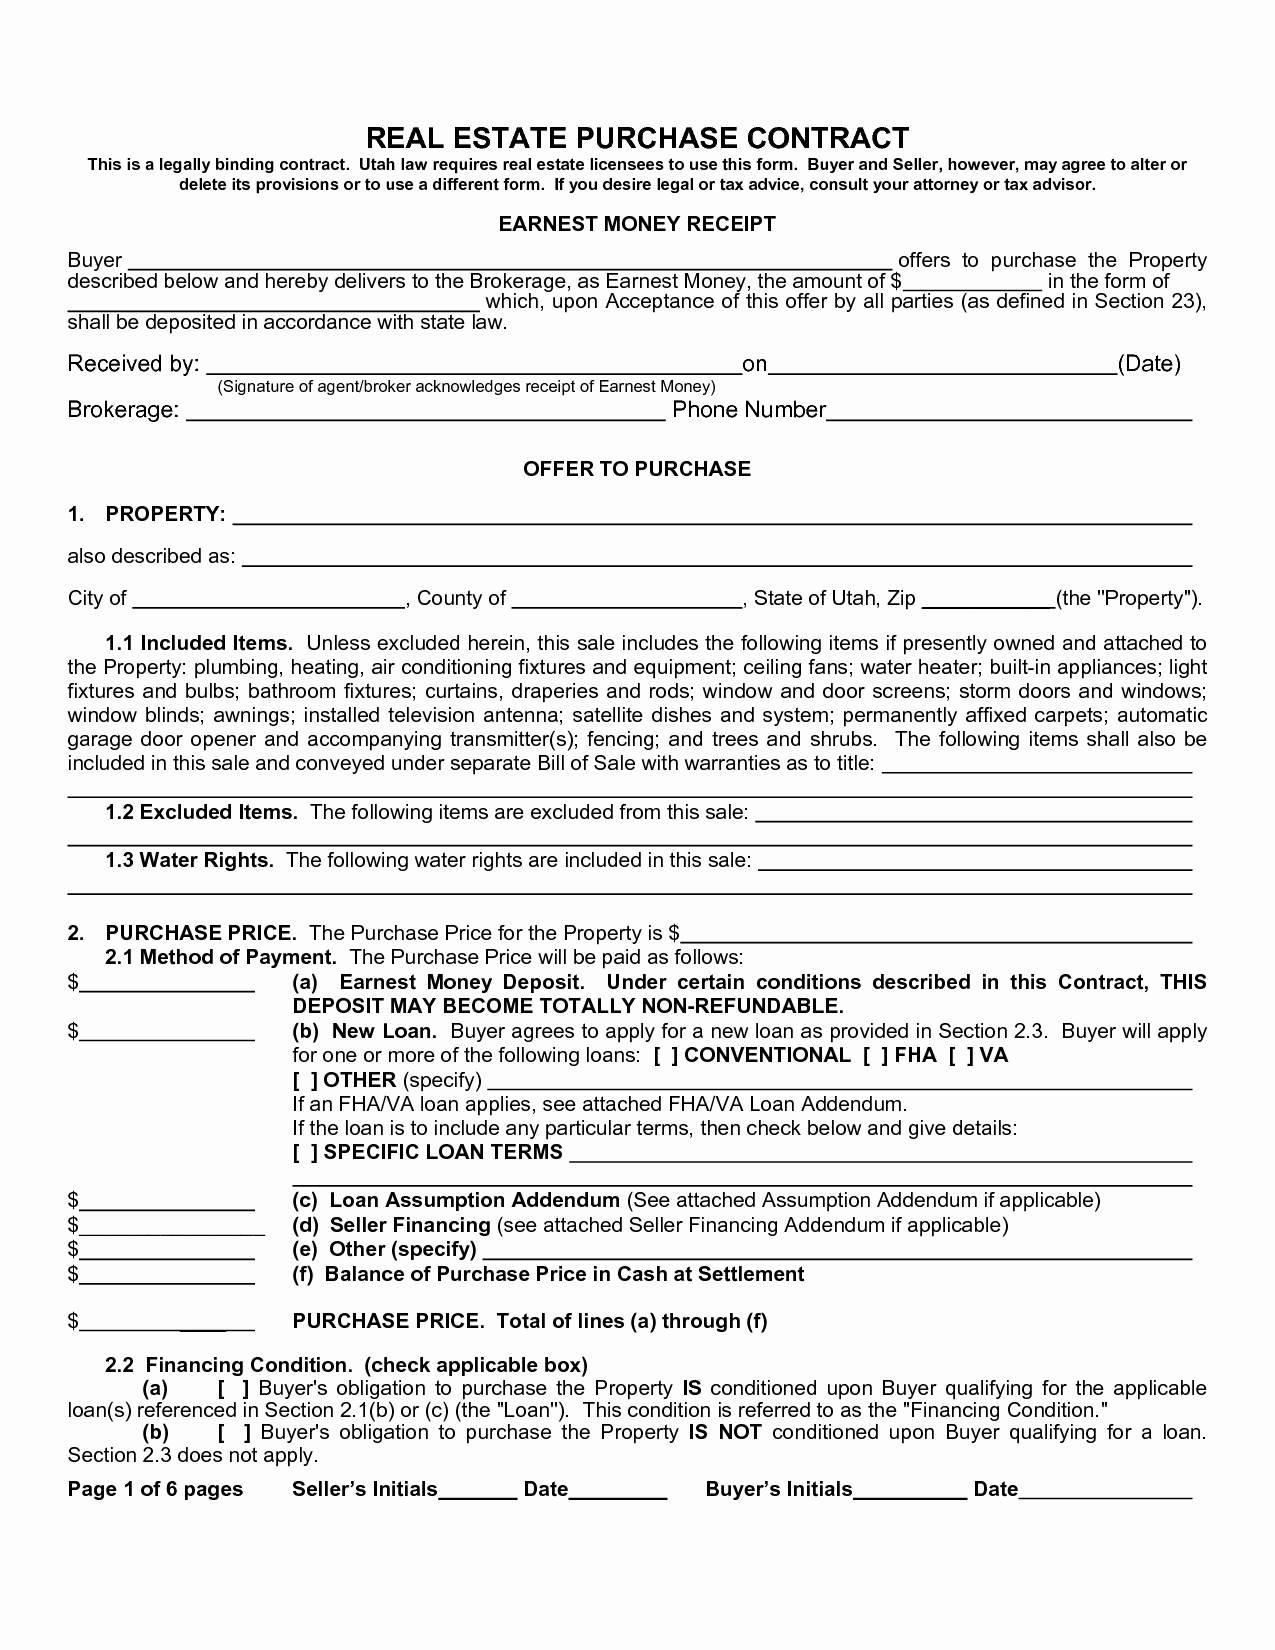 Sample Home Buyout Agreement Best Of Real Estate Purchase Agreement form Sample Image Gallery